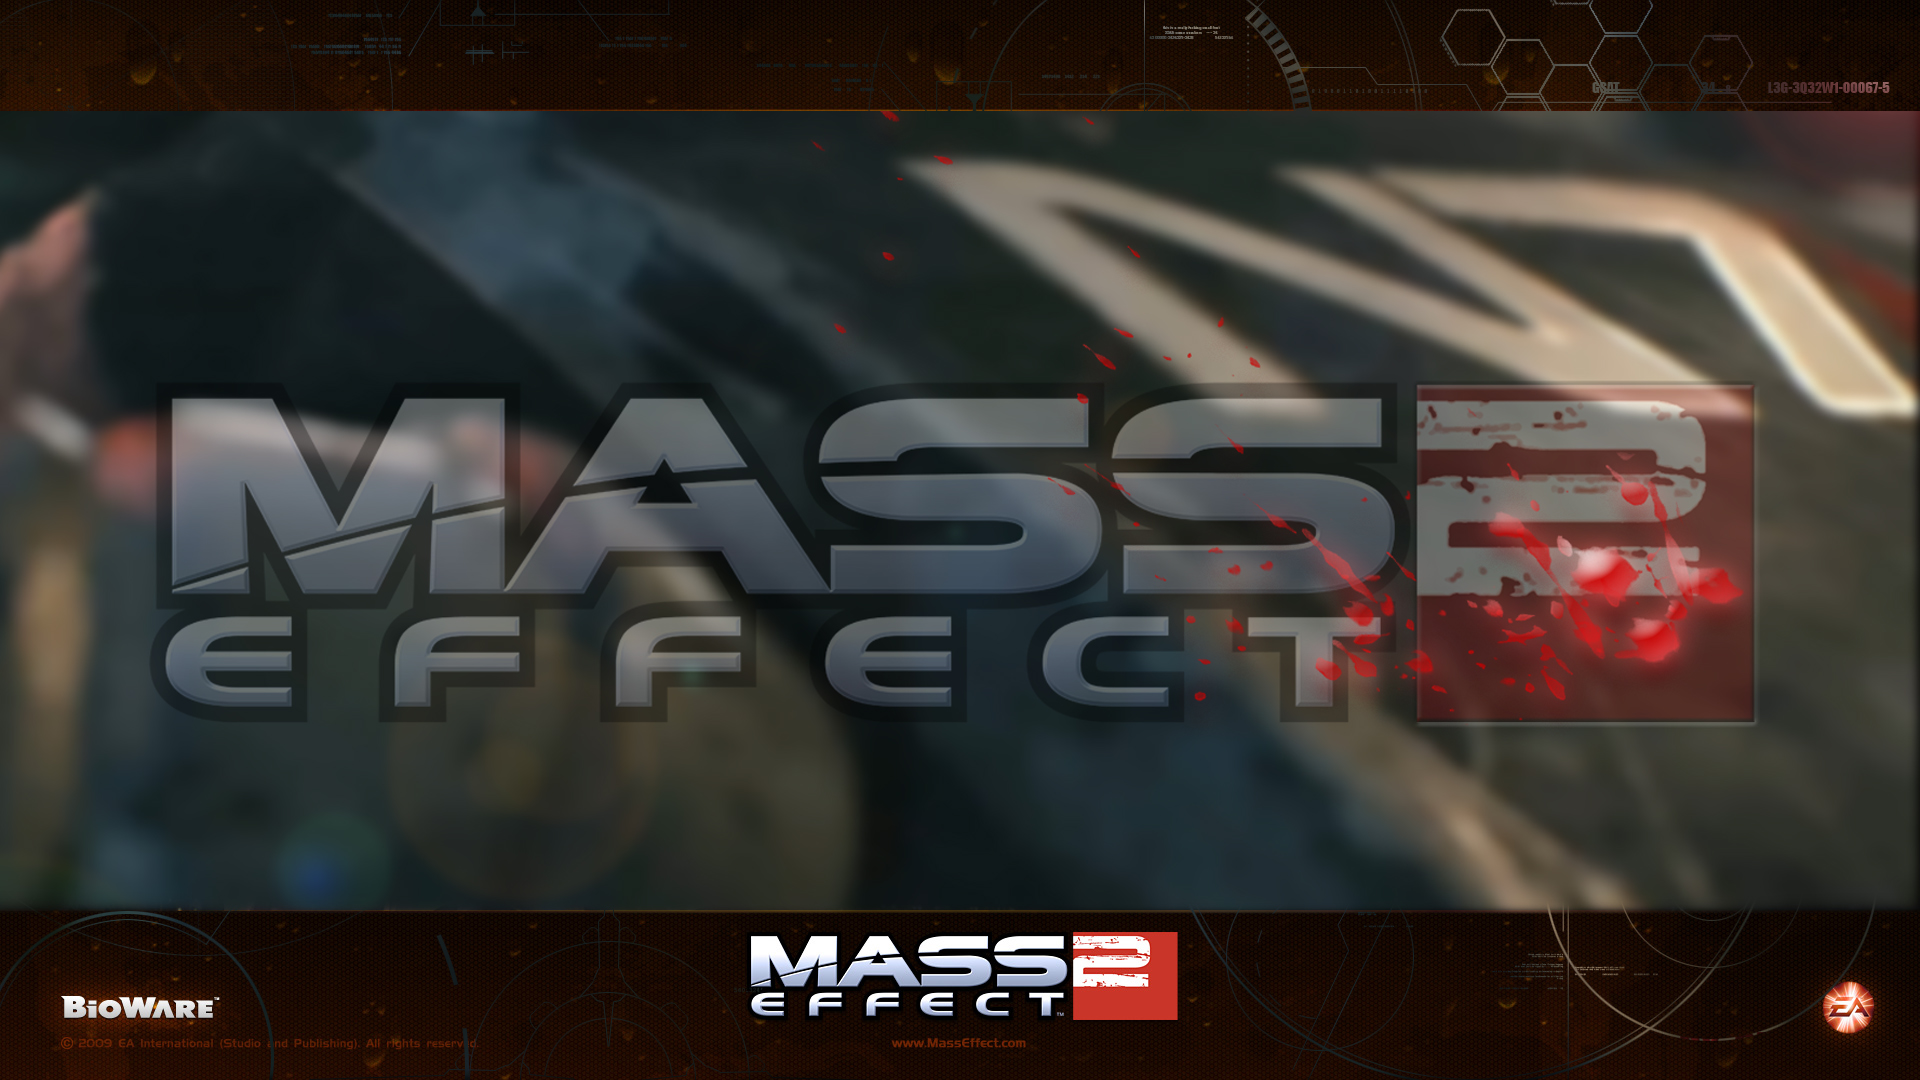 Photo of Rá! Mass Effect 2 está chegando ao Playstation 3 em 2011! [Gamescom]